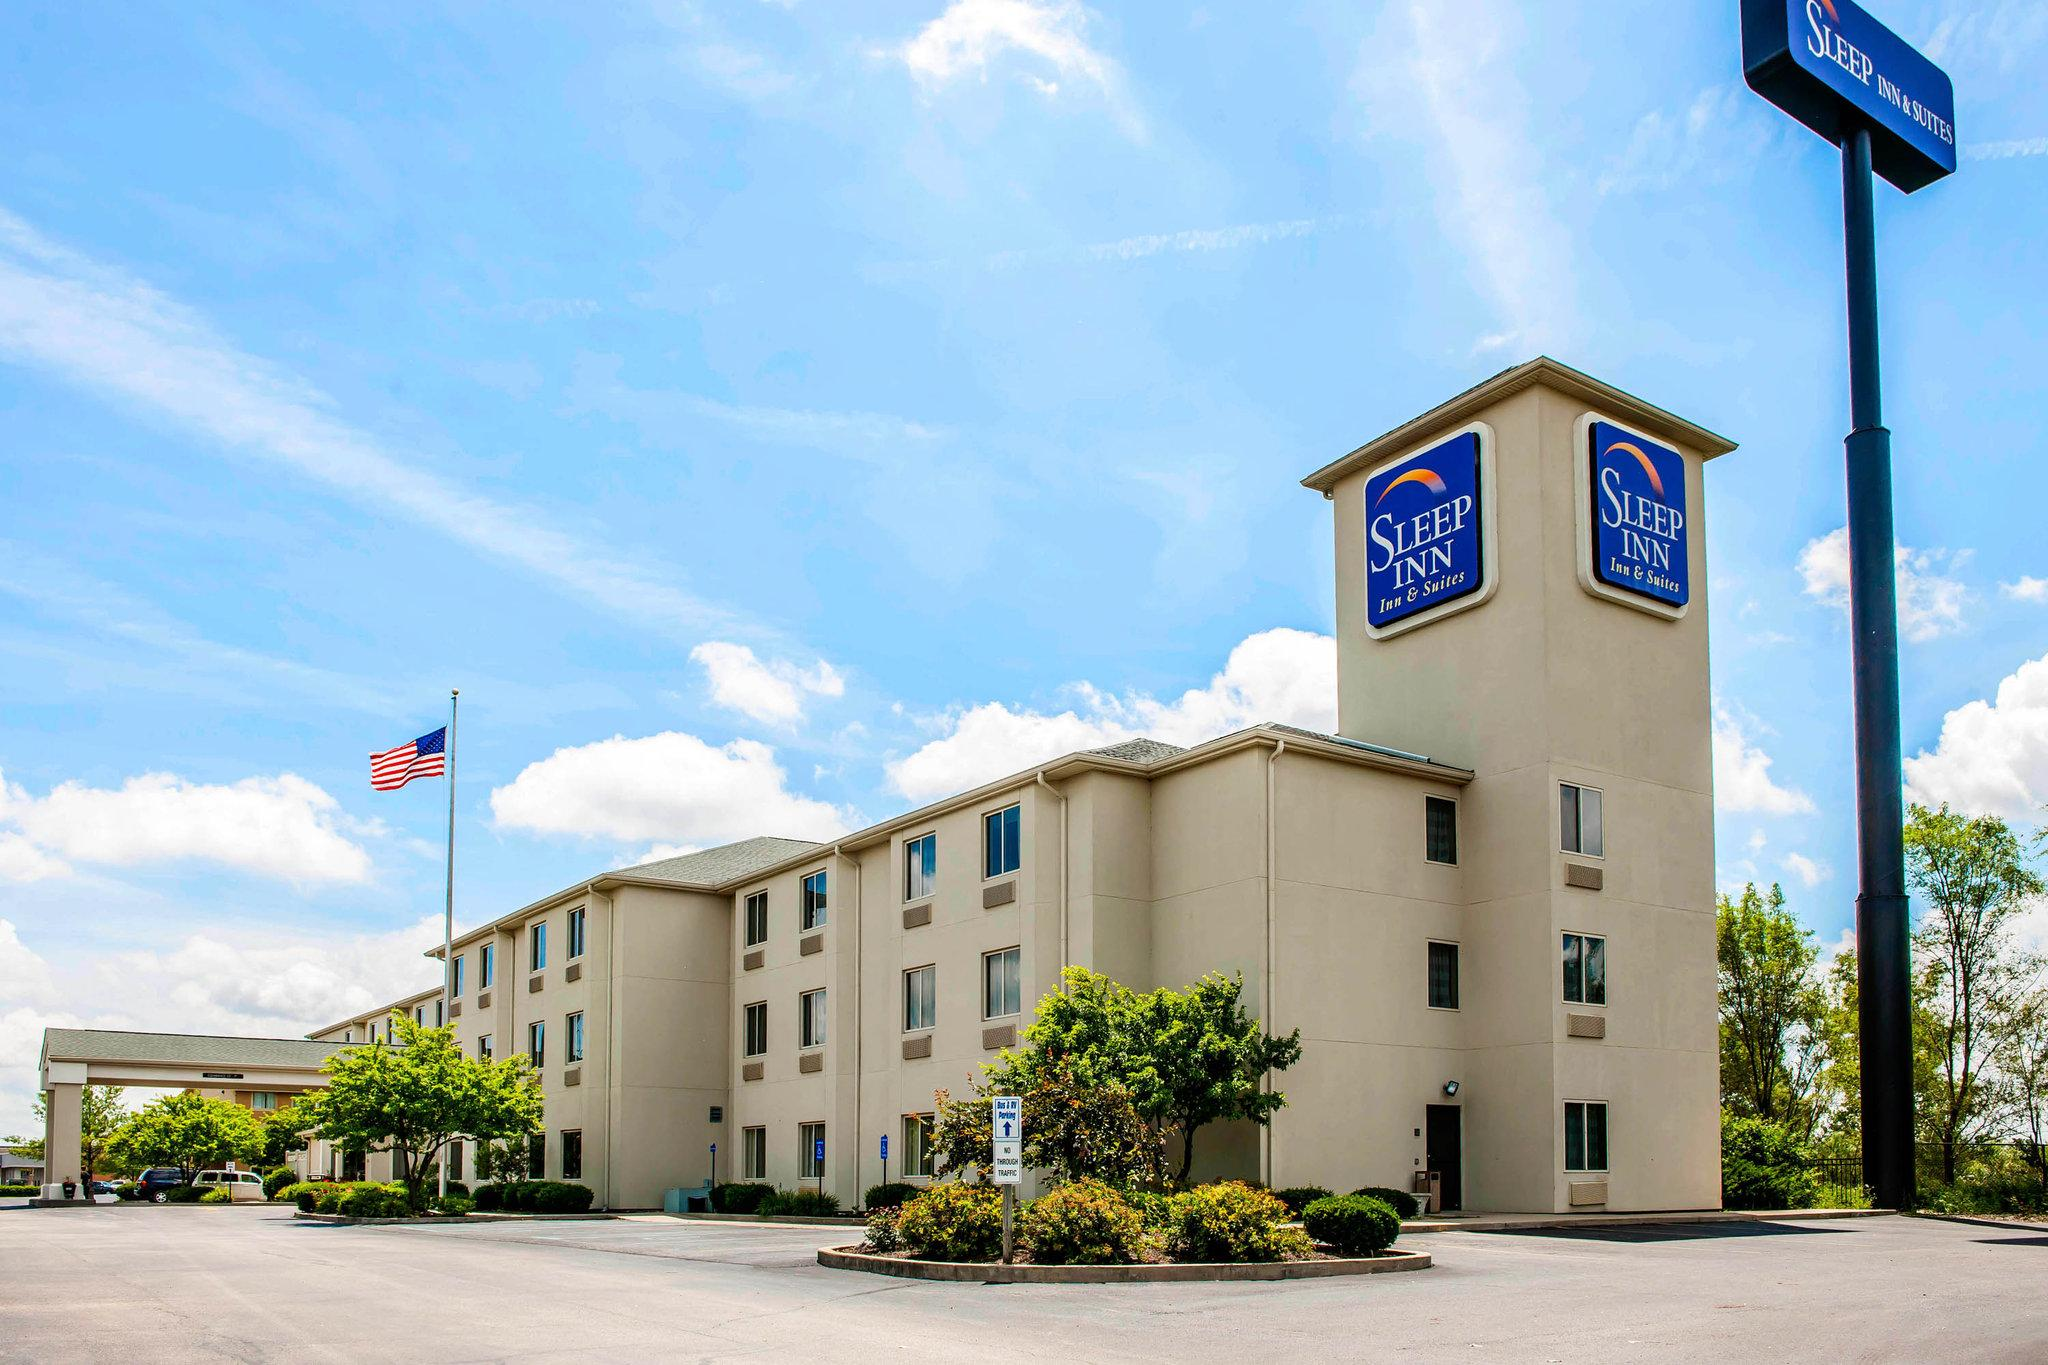 Sleep Inn & Suites Lakeside